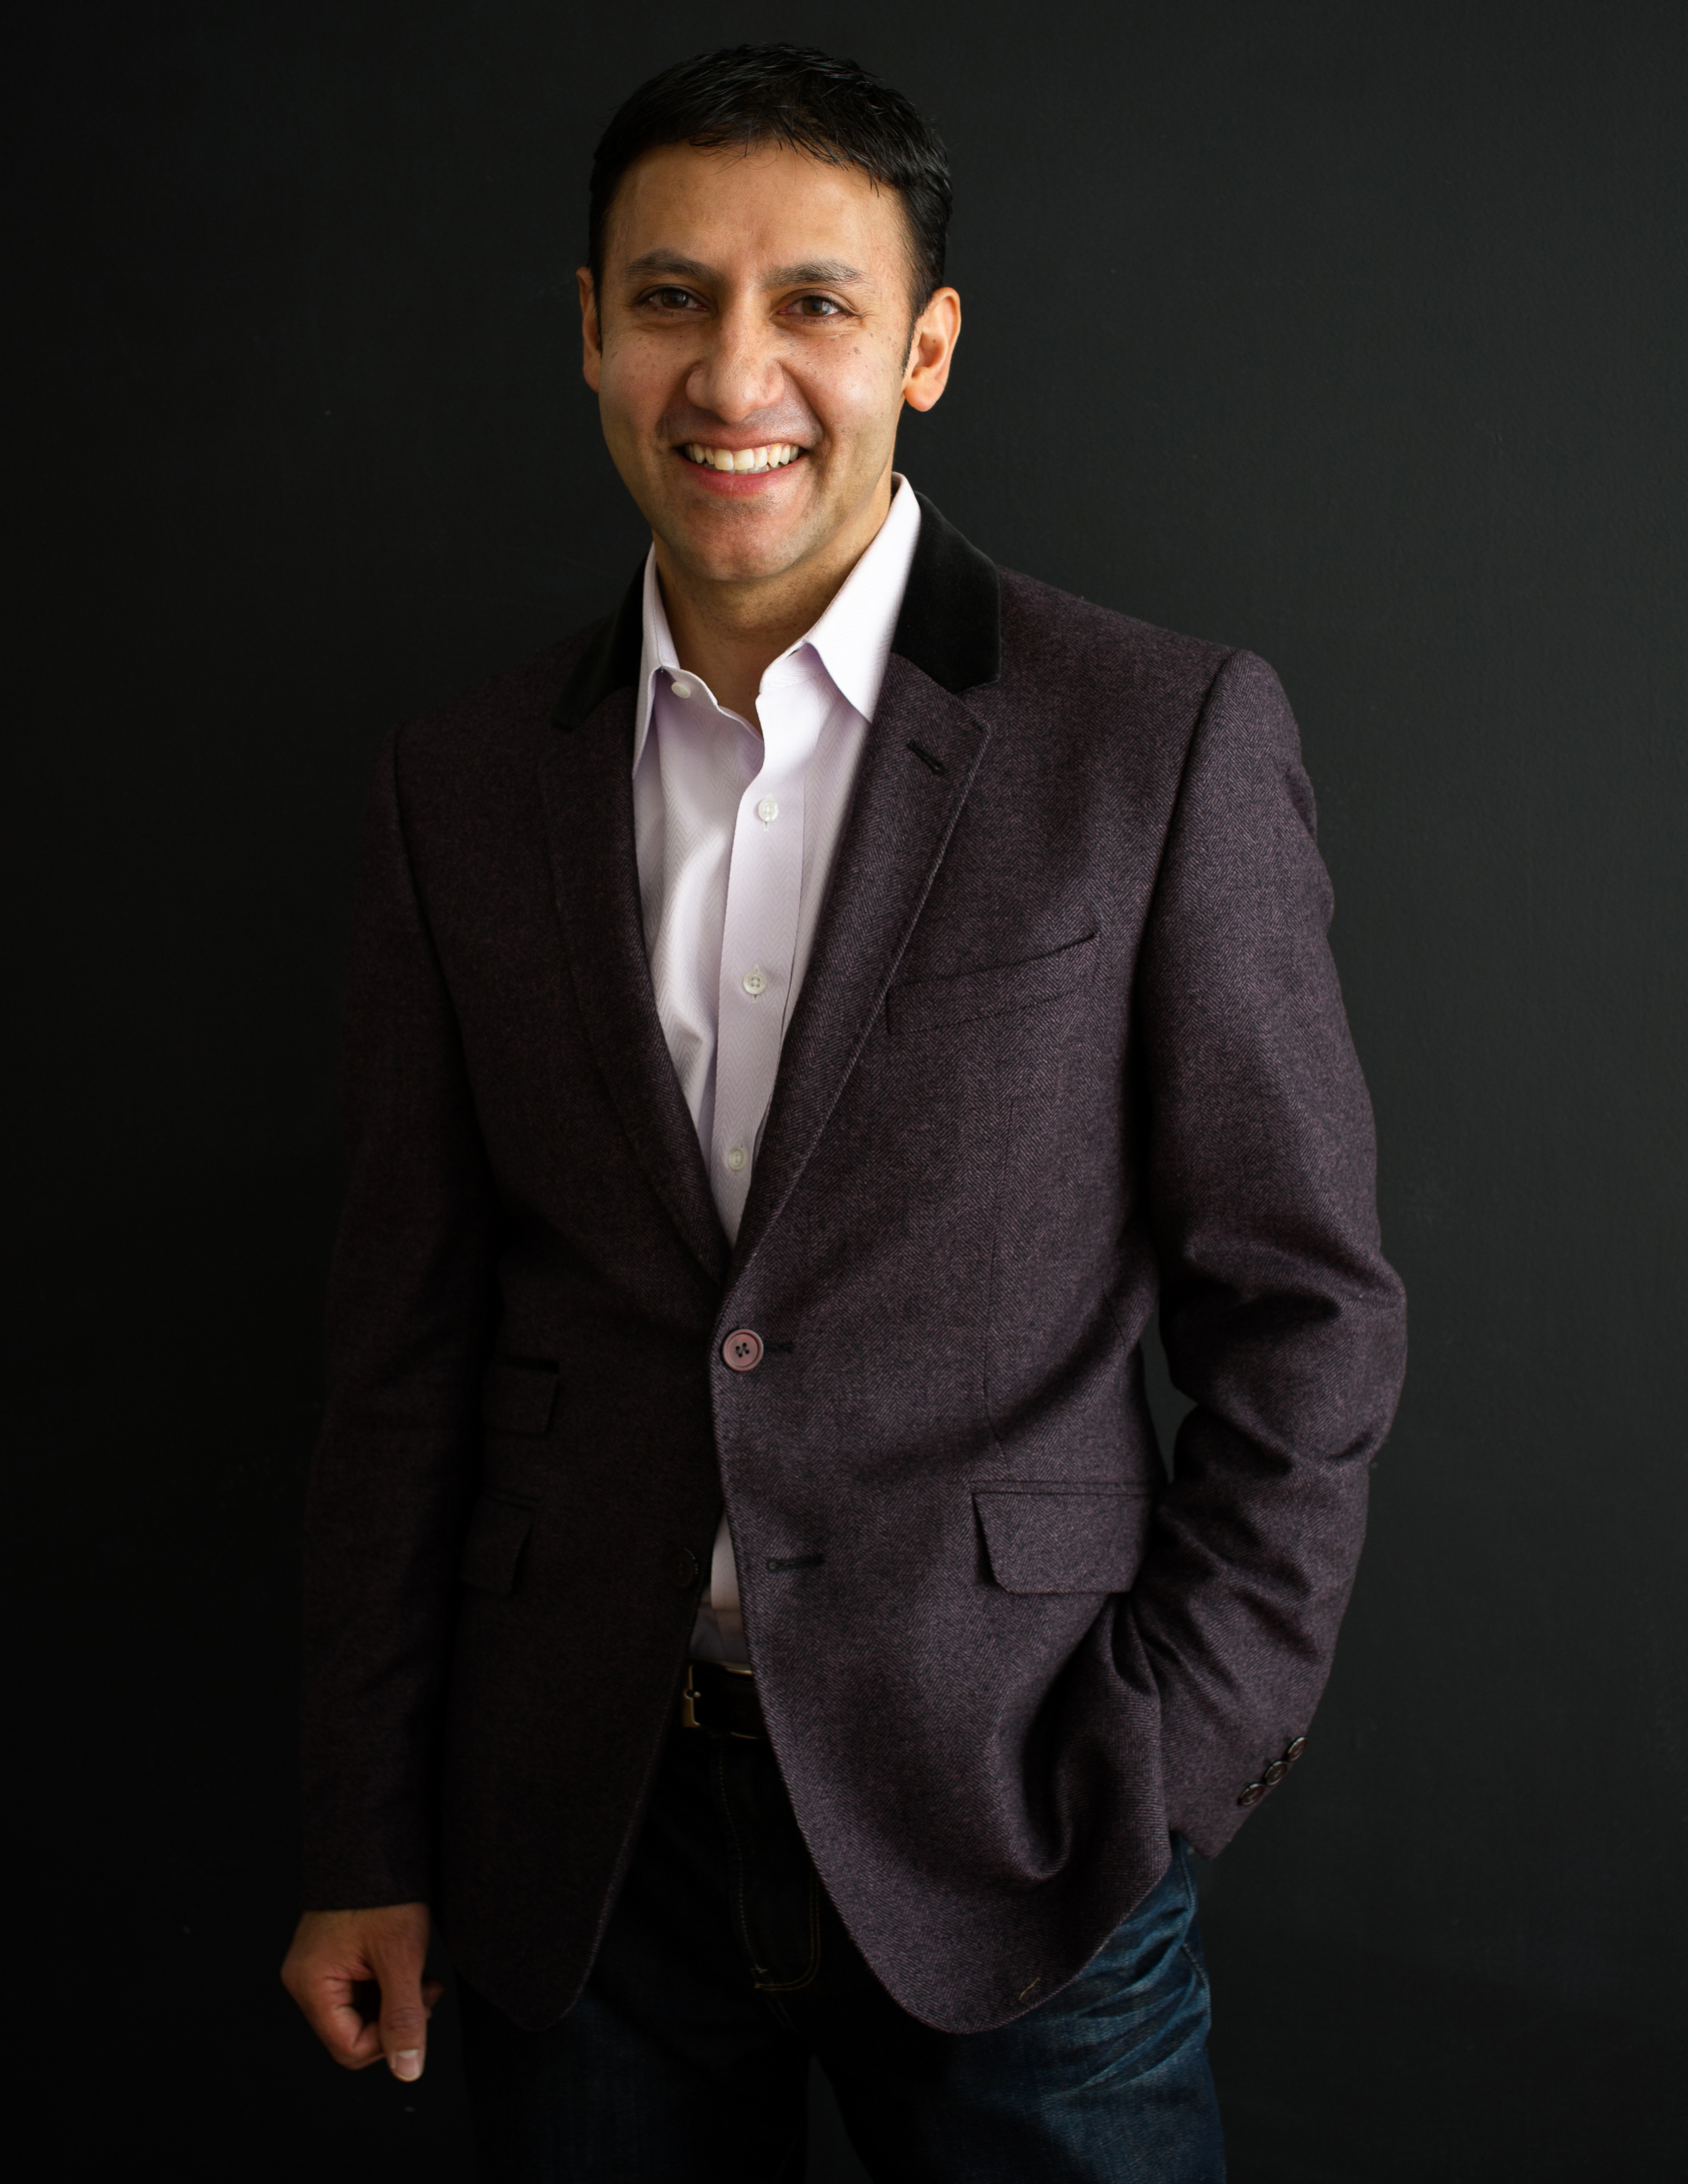 Arif Head Shots + Profile Shoot 2013-51.jpg